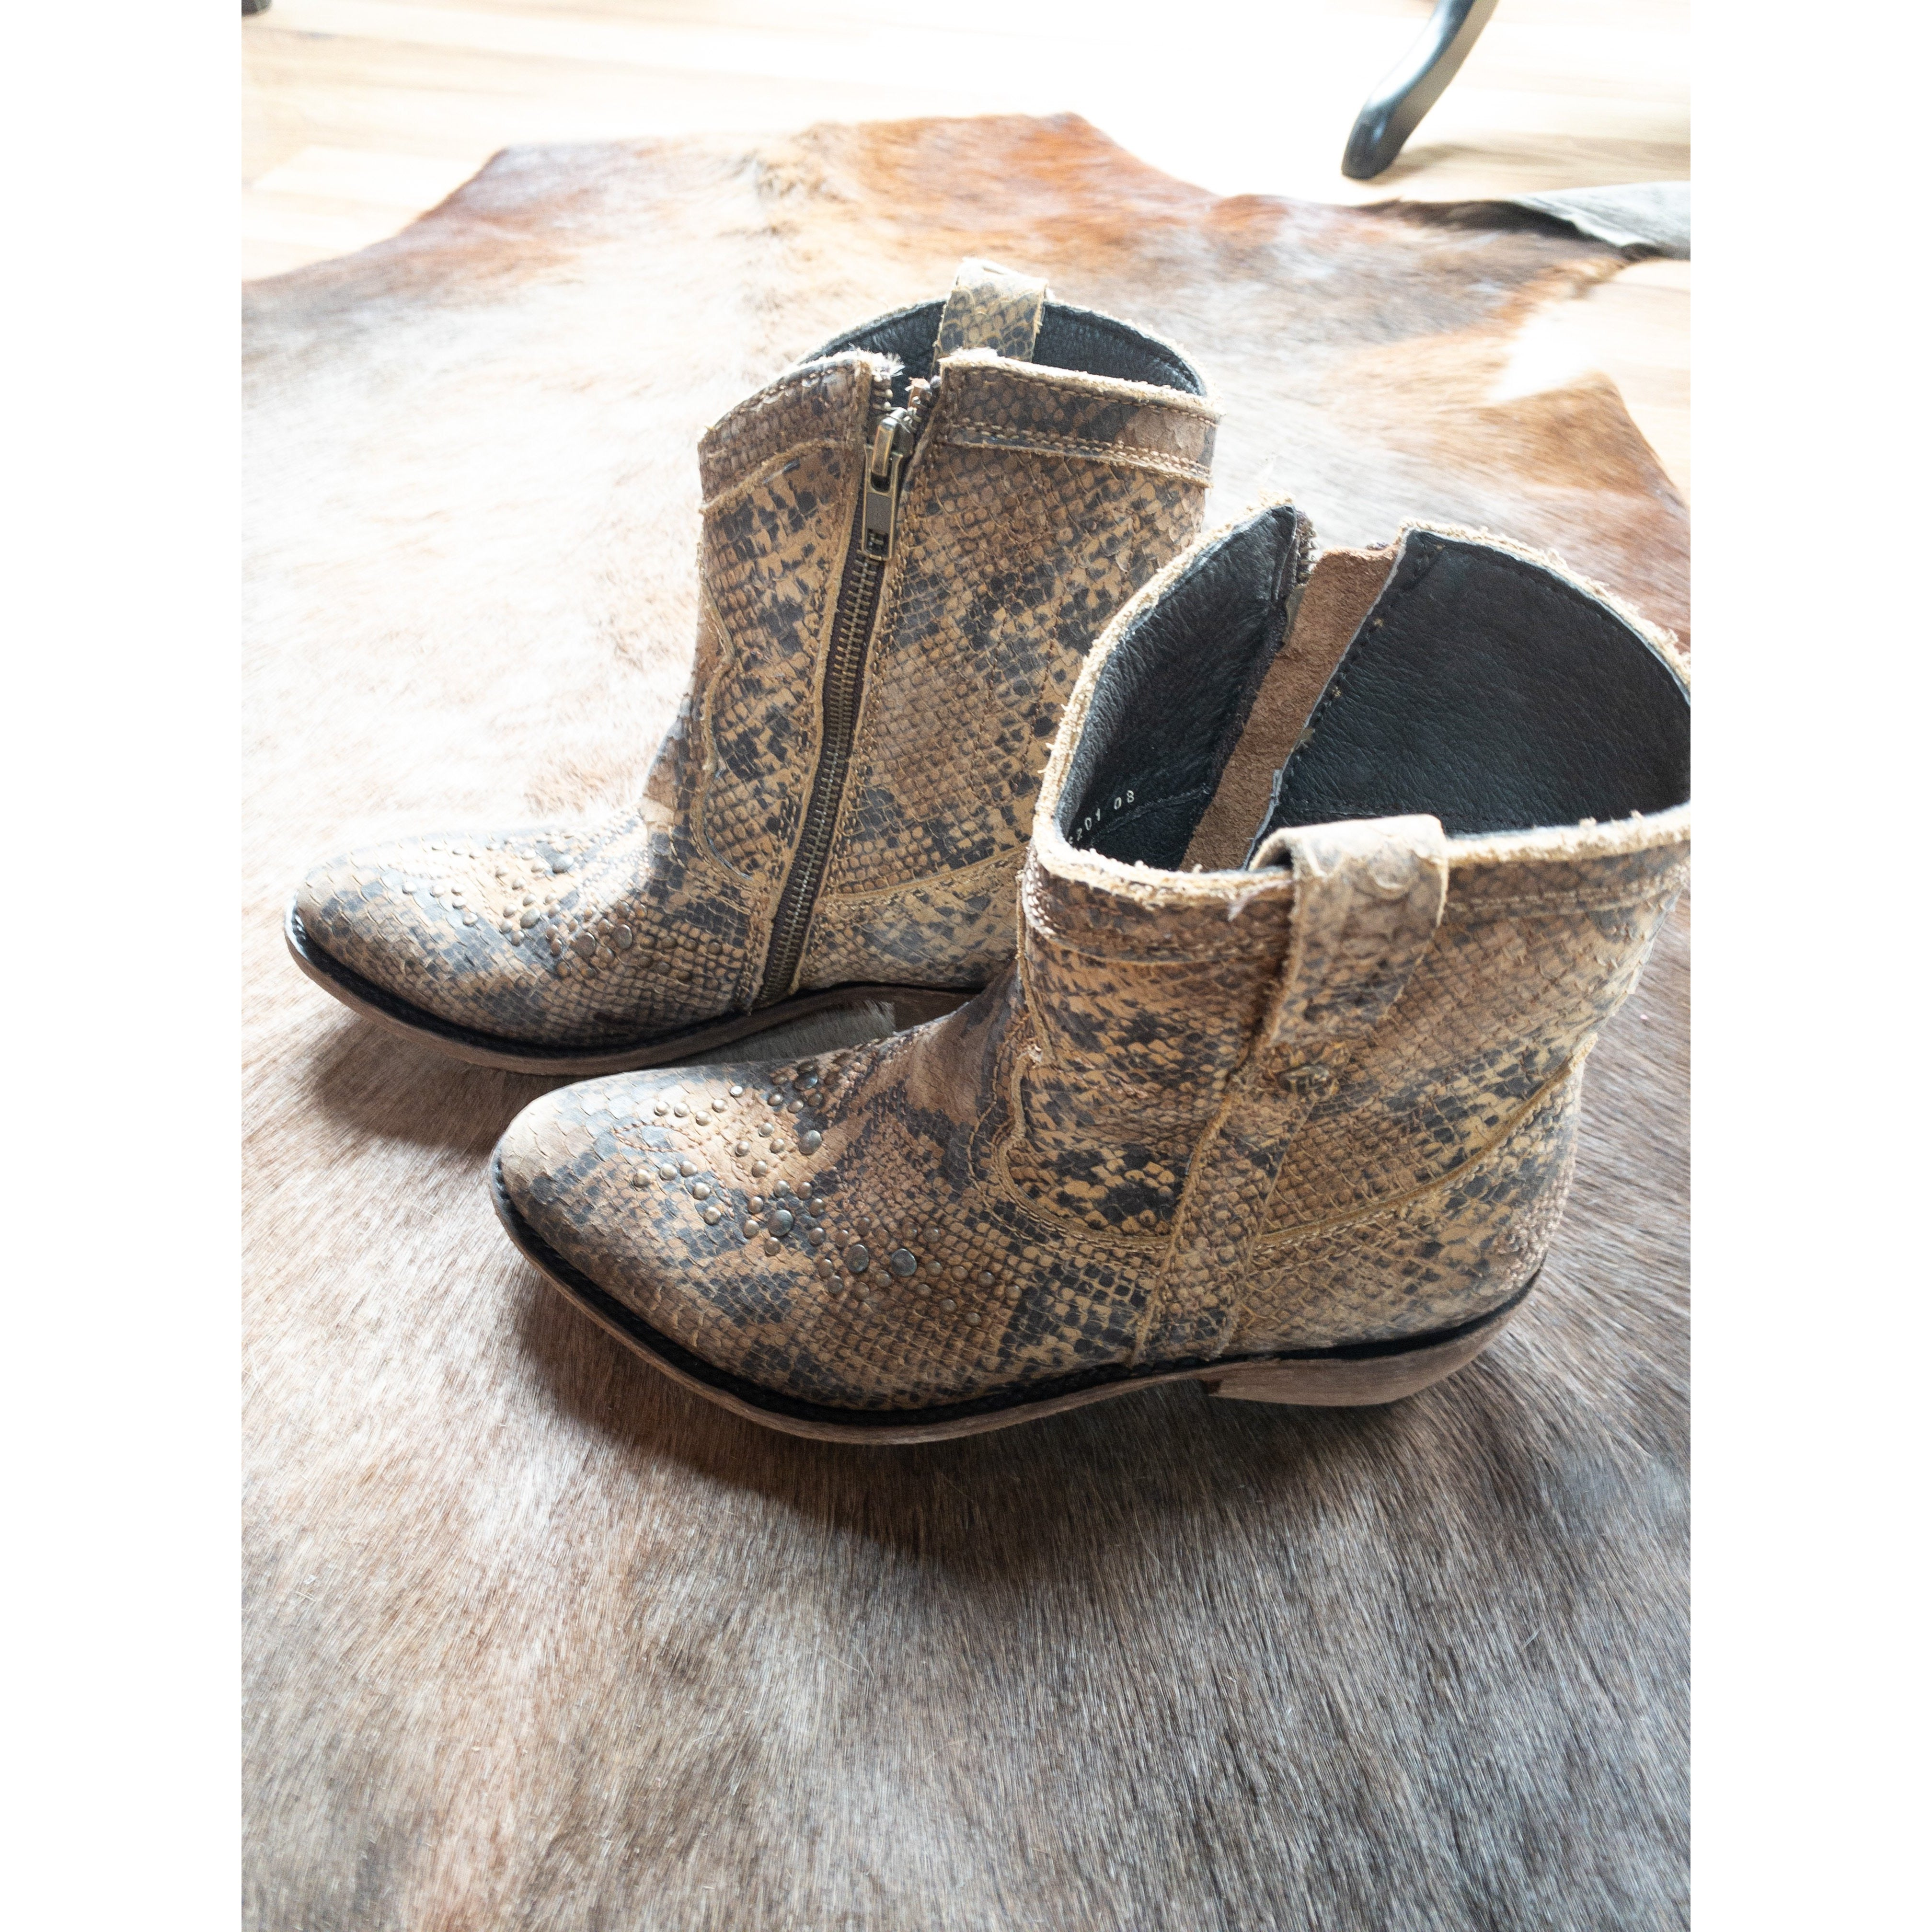 Liberty Black Python Bootie - All Blinged Out/Calamity's